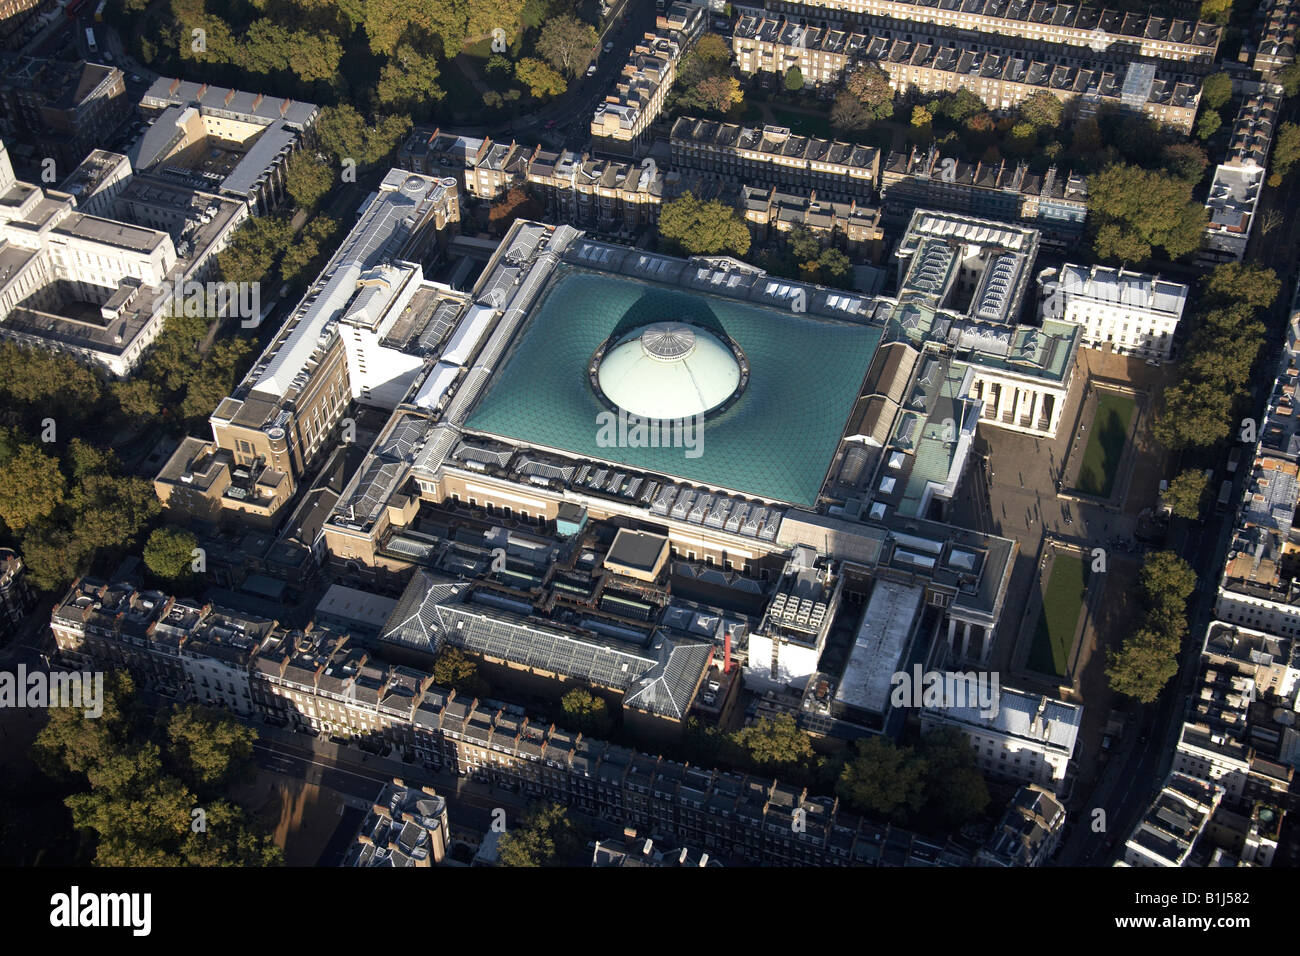 Aerial view north east of The British Museum and inner city buildings Bloomsbury London WC1 England UK - Stock Image